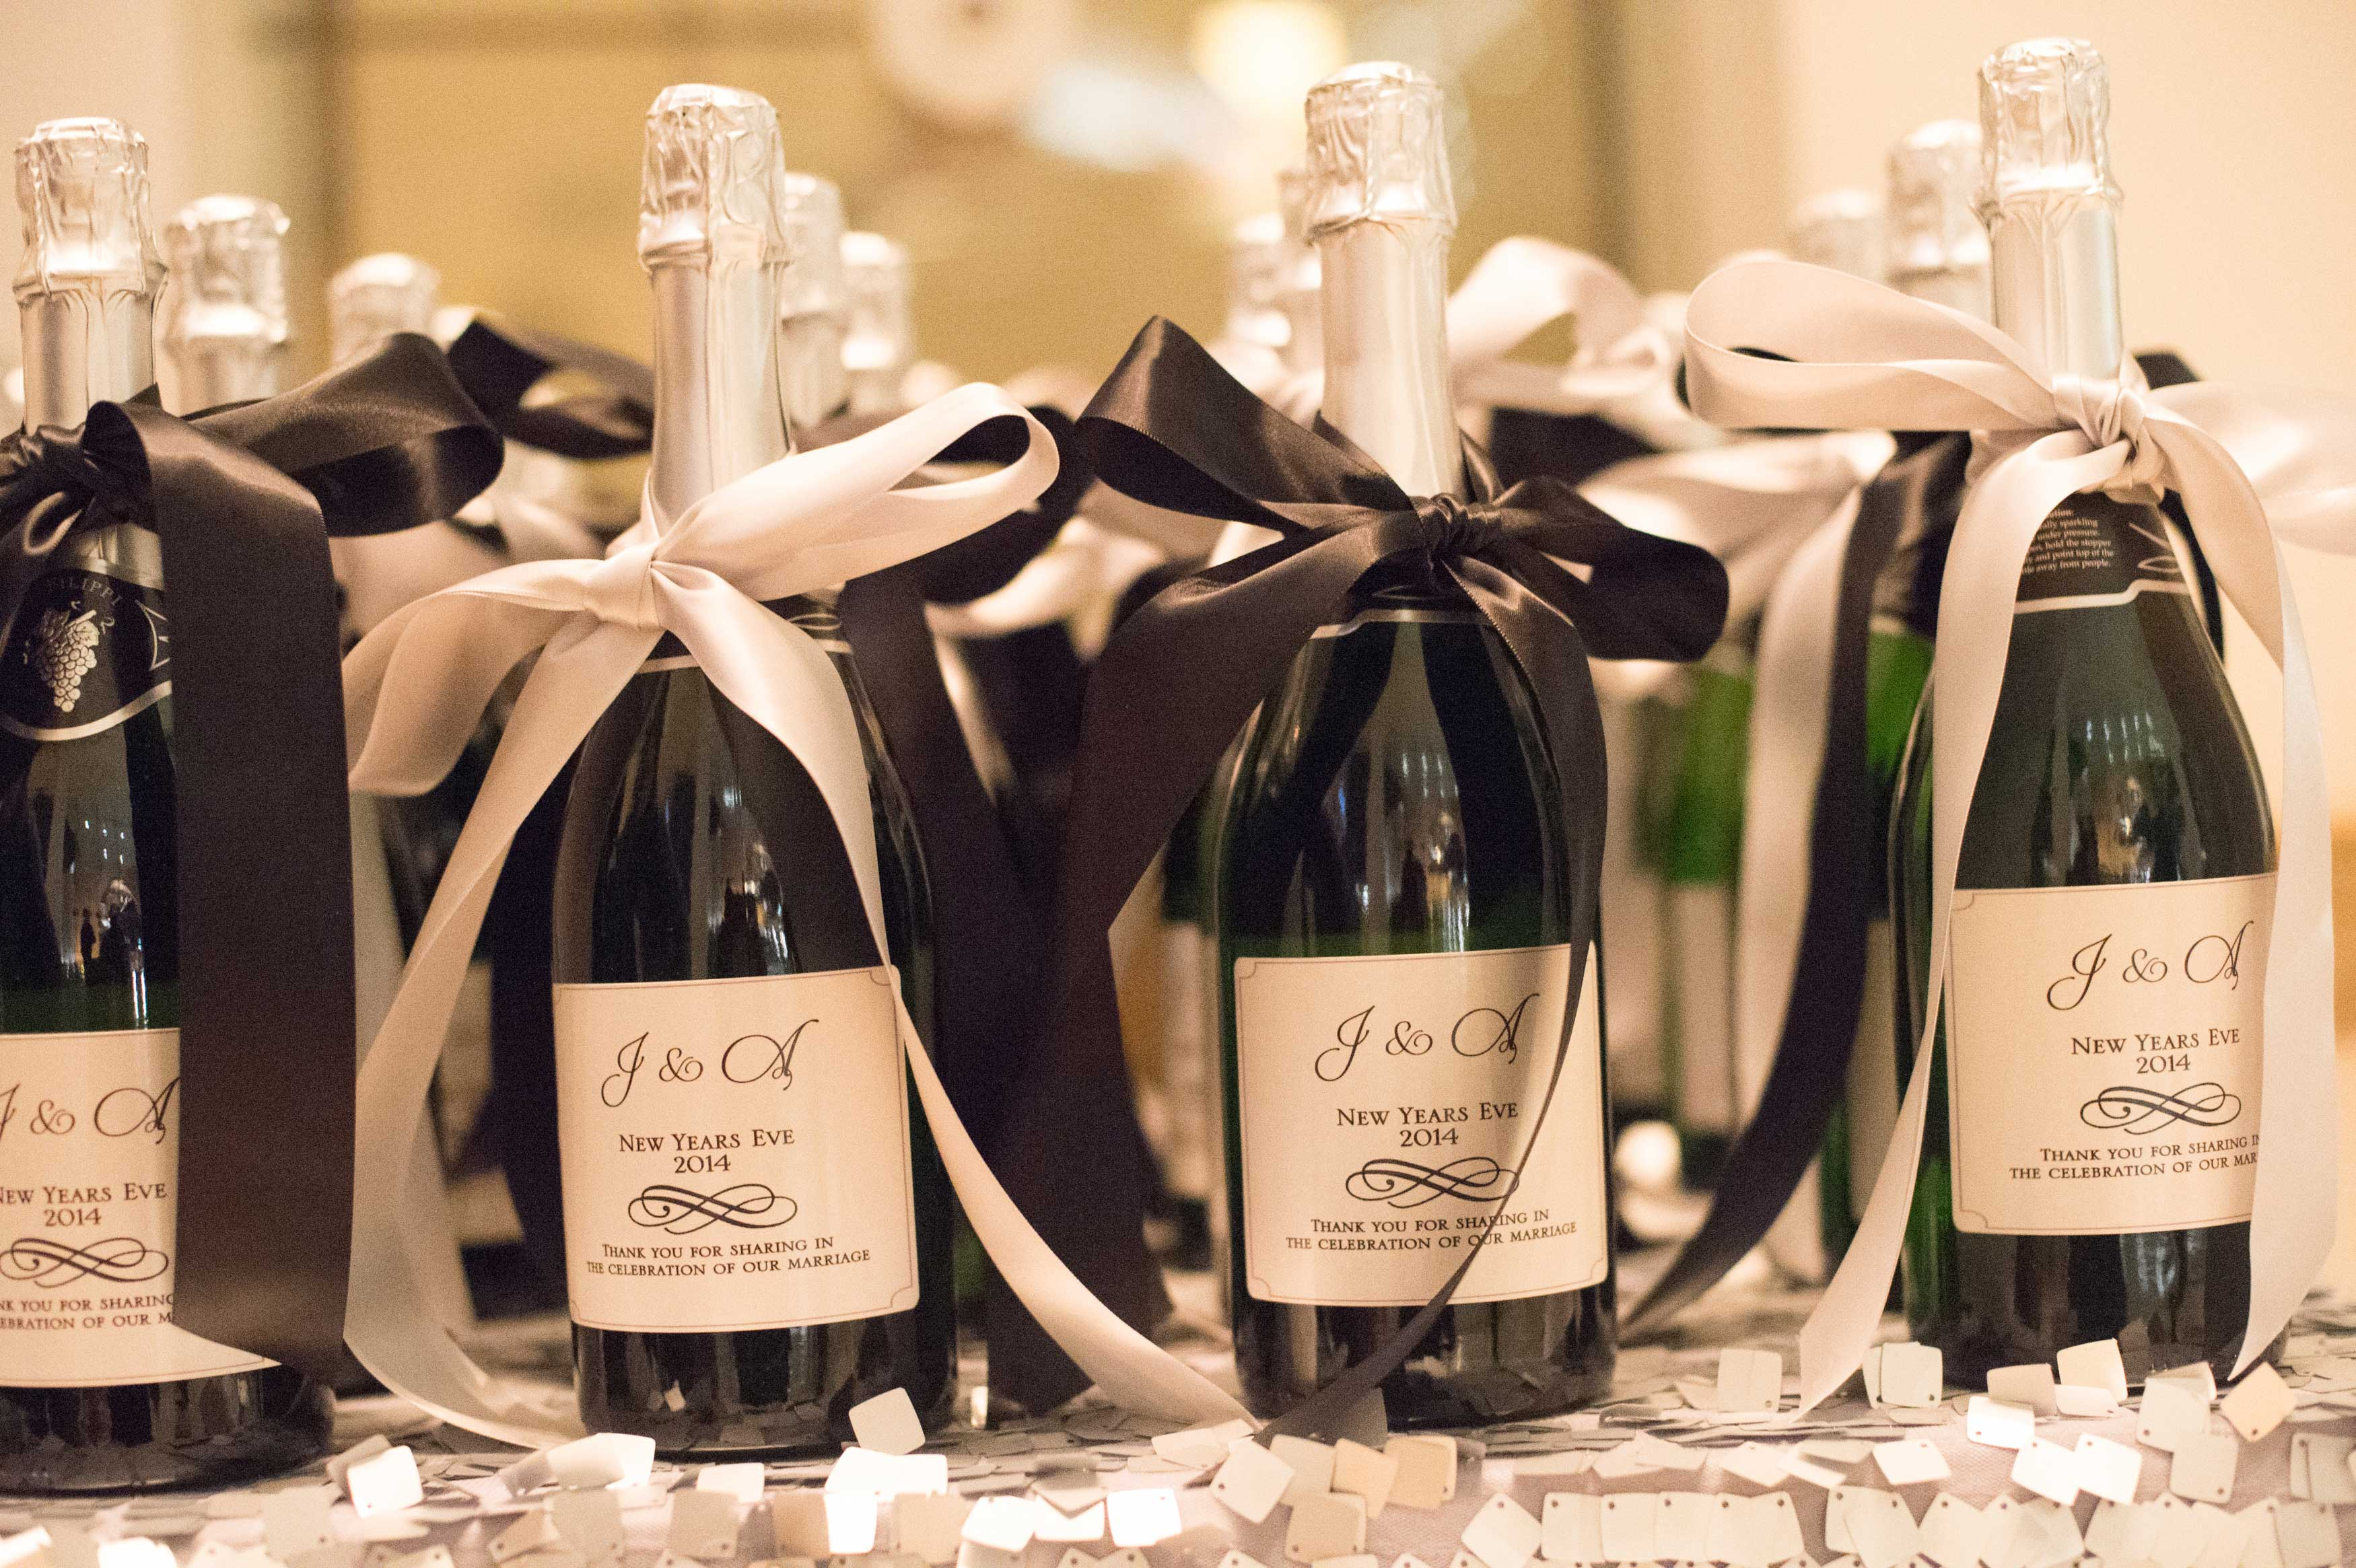 Champagne wedding favors for New Year's Eve wedding